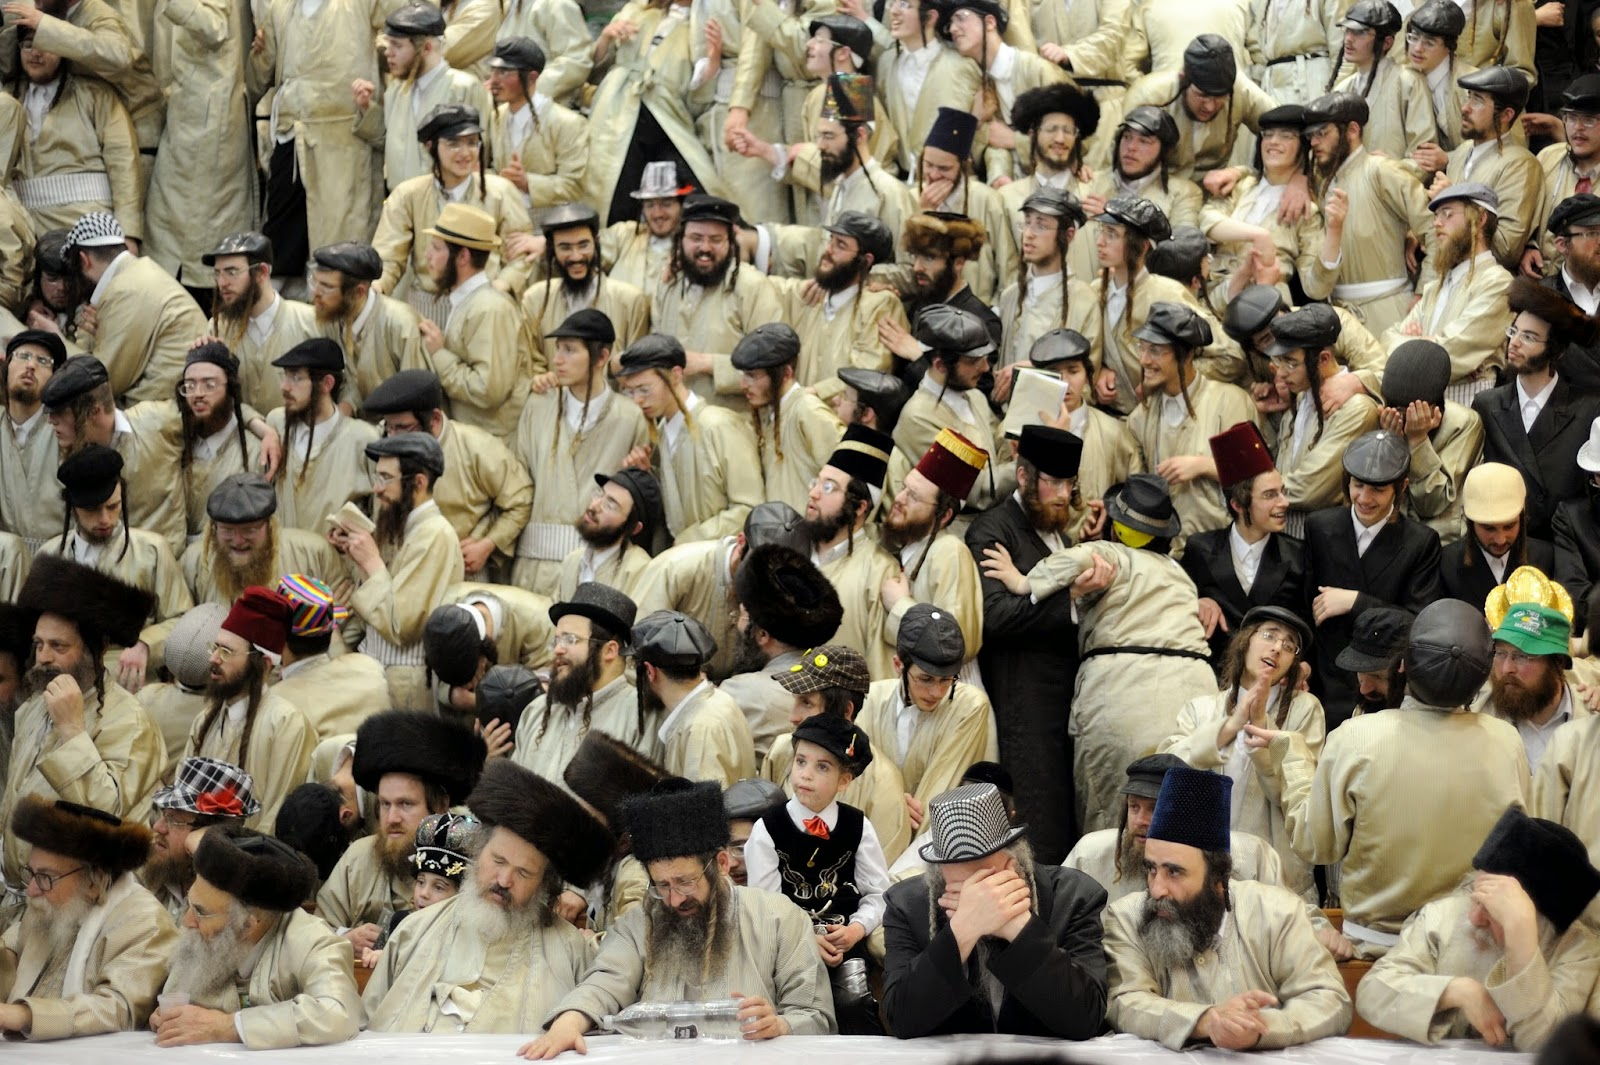 Copyright: ©Gili Yaari, Israel, Shortlist, Arts & Culture, Professional, 2015 Sony World Photography Awards. Image name: Purim Holiday in Jerusalem. Description: Ultra-Orthodox Jewish men of the Toldot Aharon Sect celebrate the Purim holiday in the ultra-orthodox Mea Shearim neighborhood in Jerusalem on March 17, 2014. The festival of Purim commemorates the rescue of Jews from a genocide in ancient Persia.